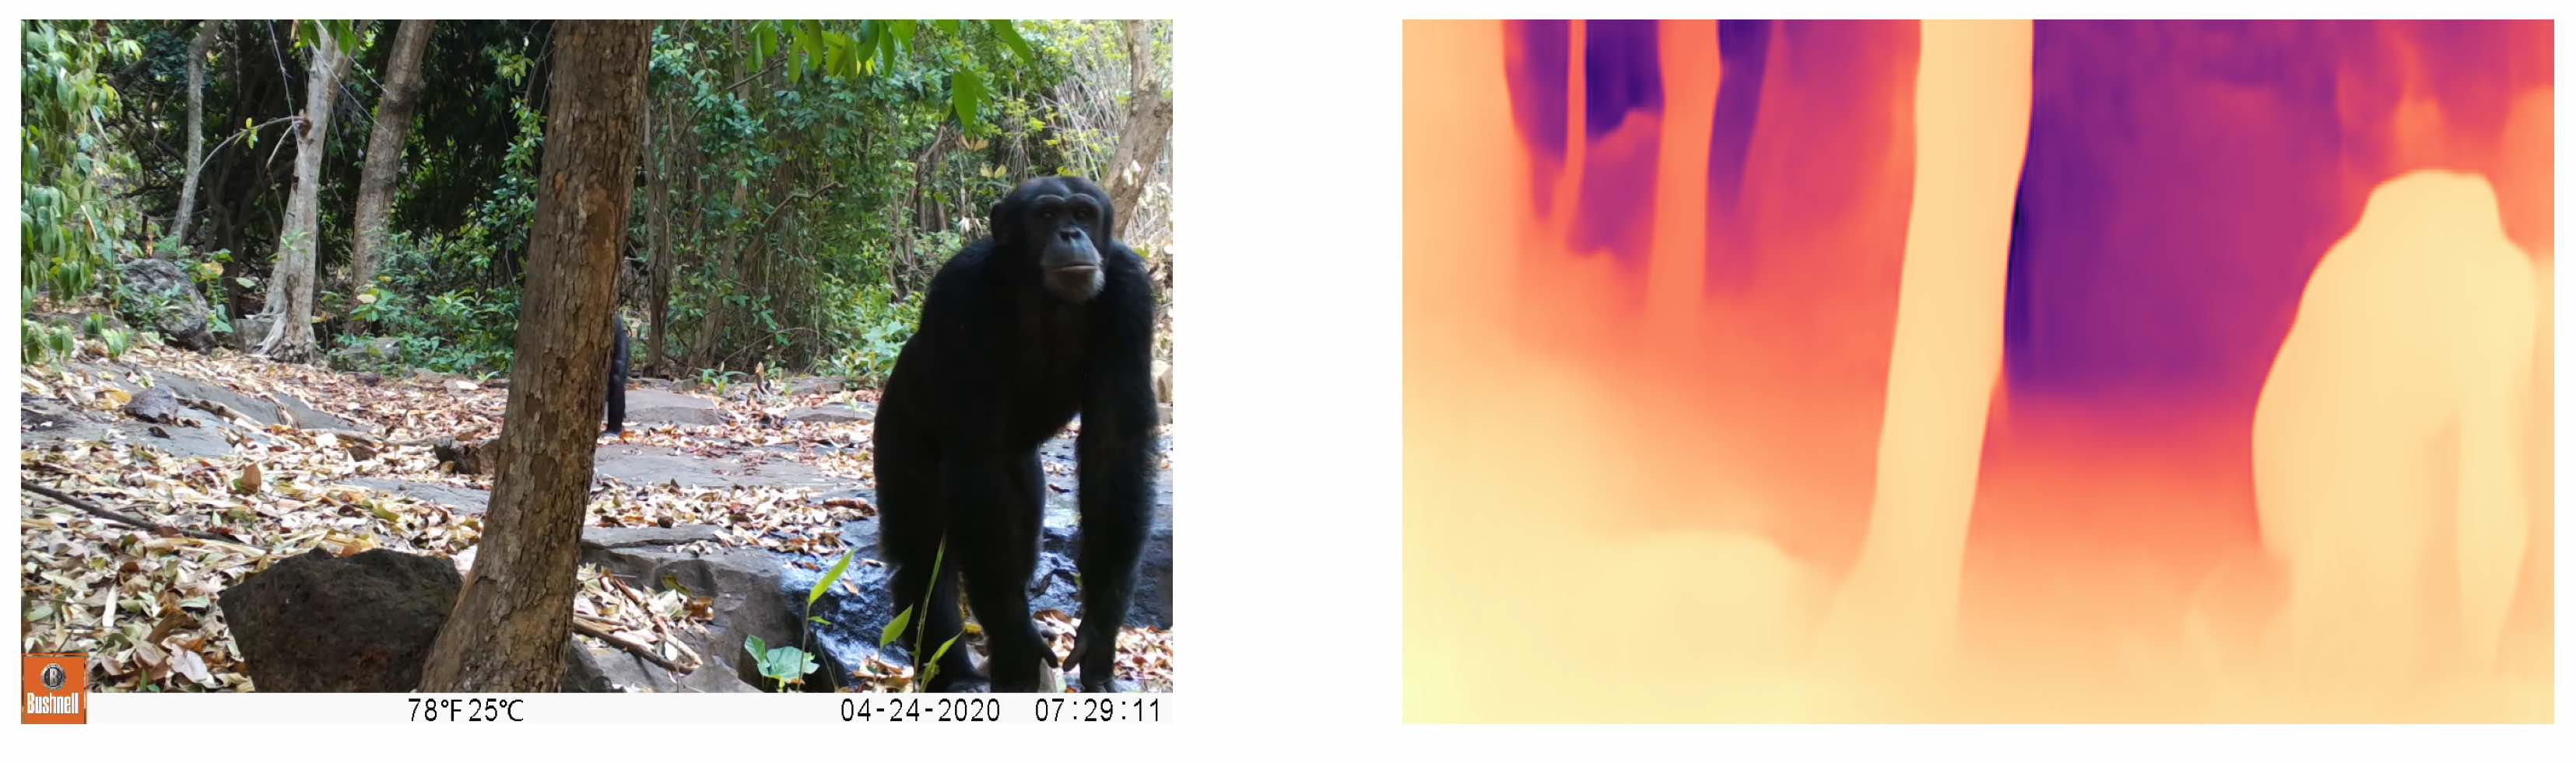 An image of a chimpanzee, and a model-generated depth mask for the image